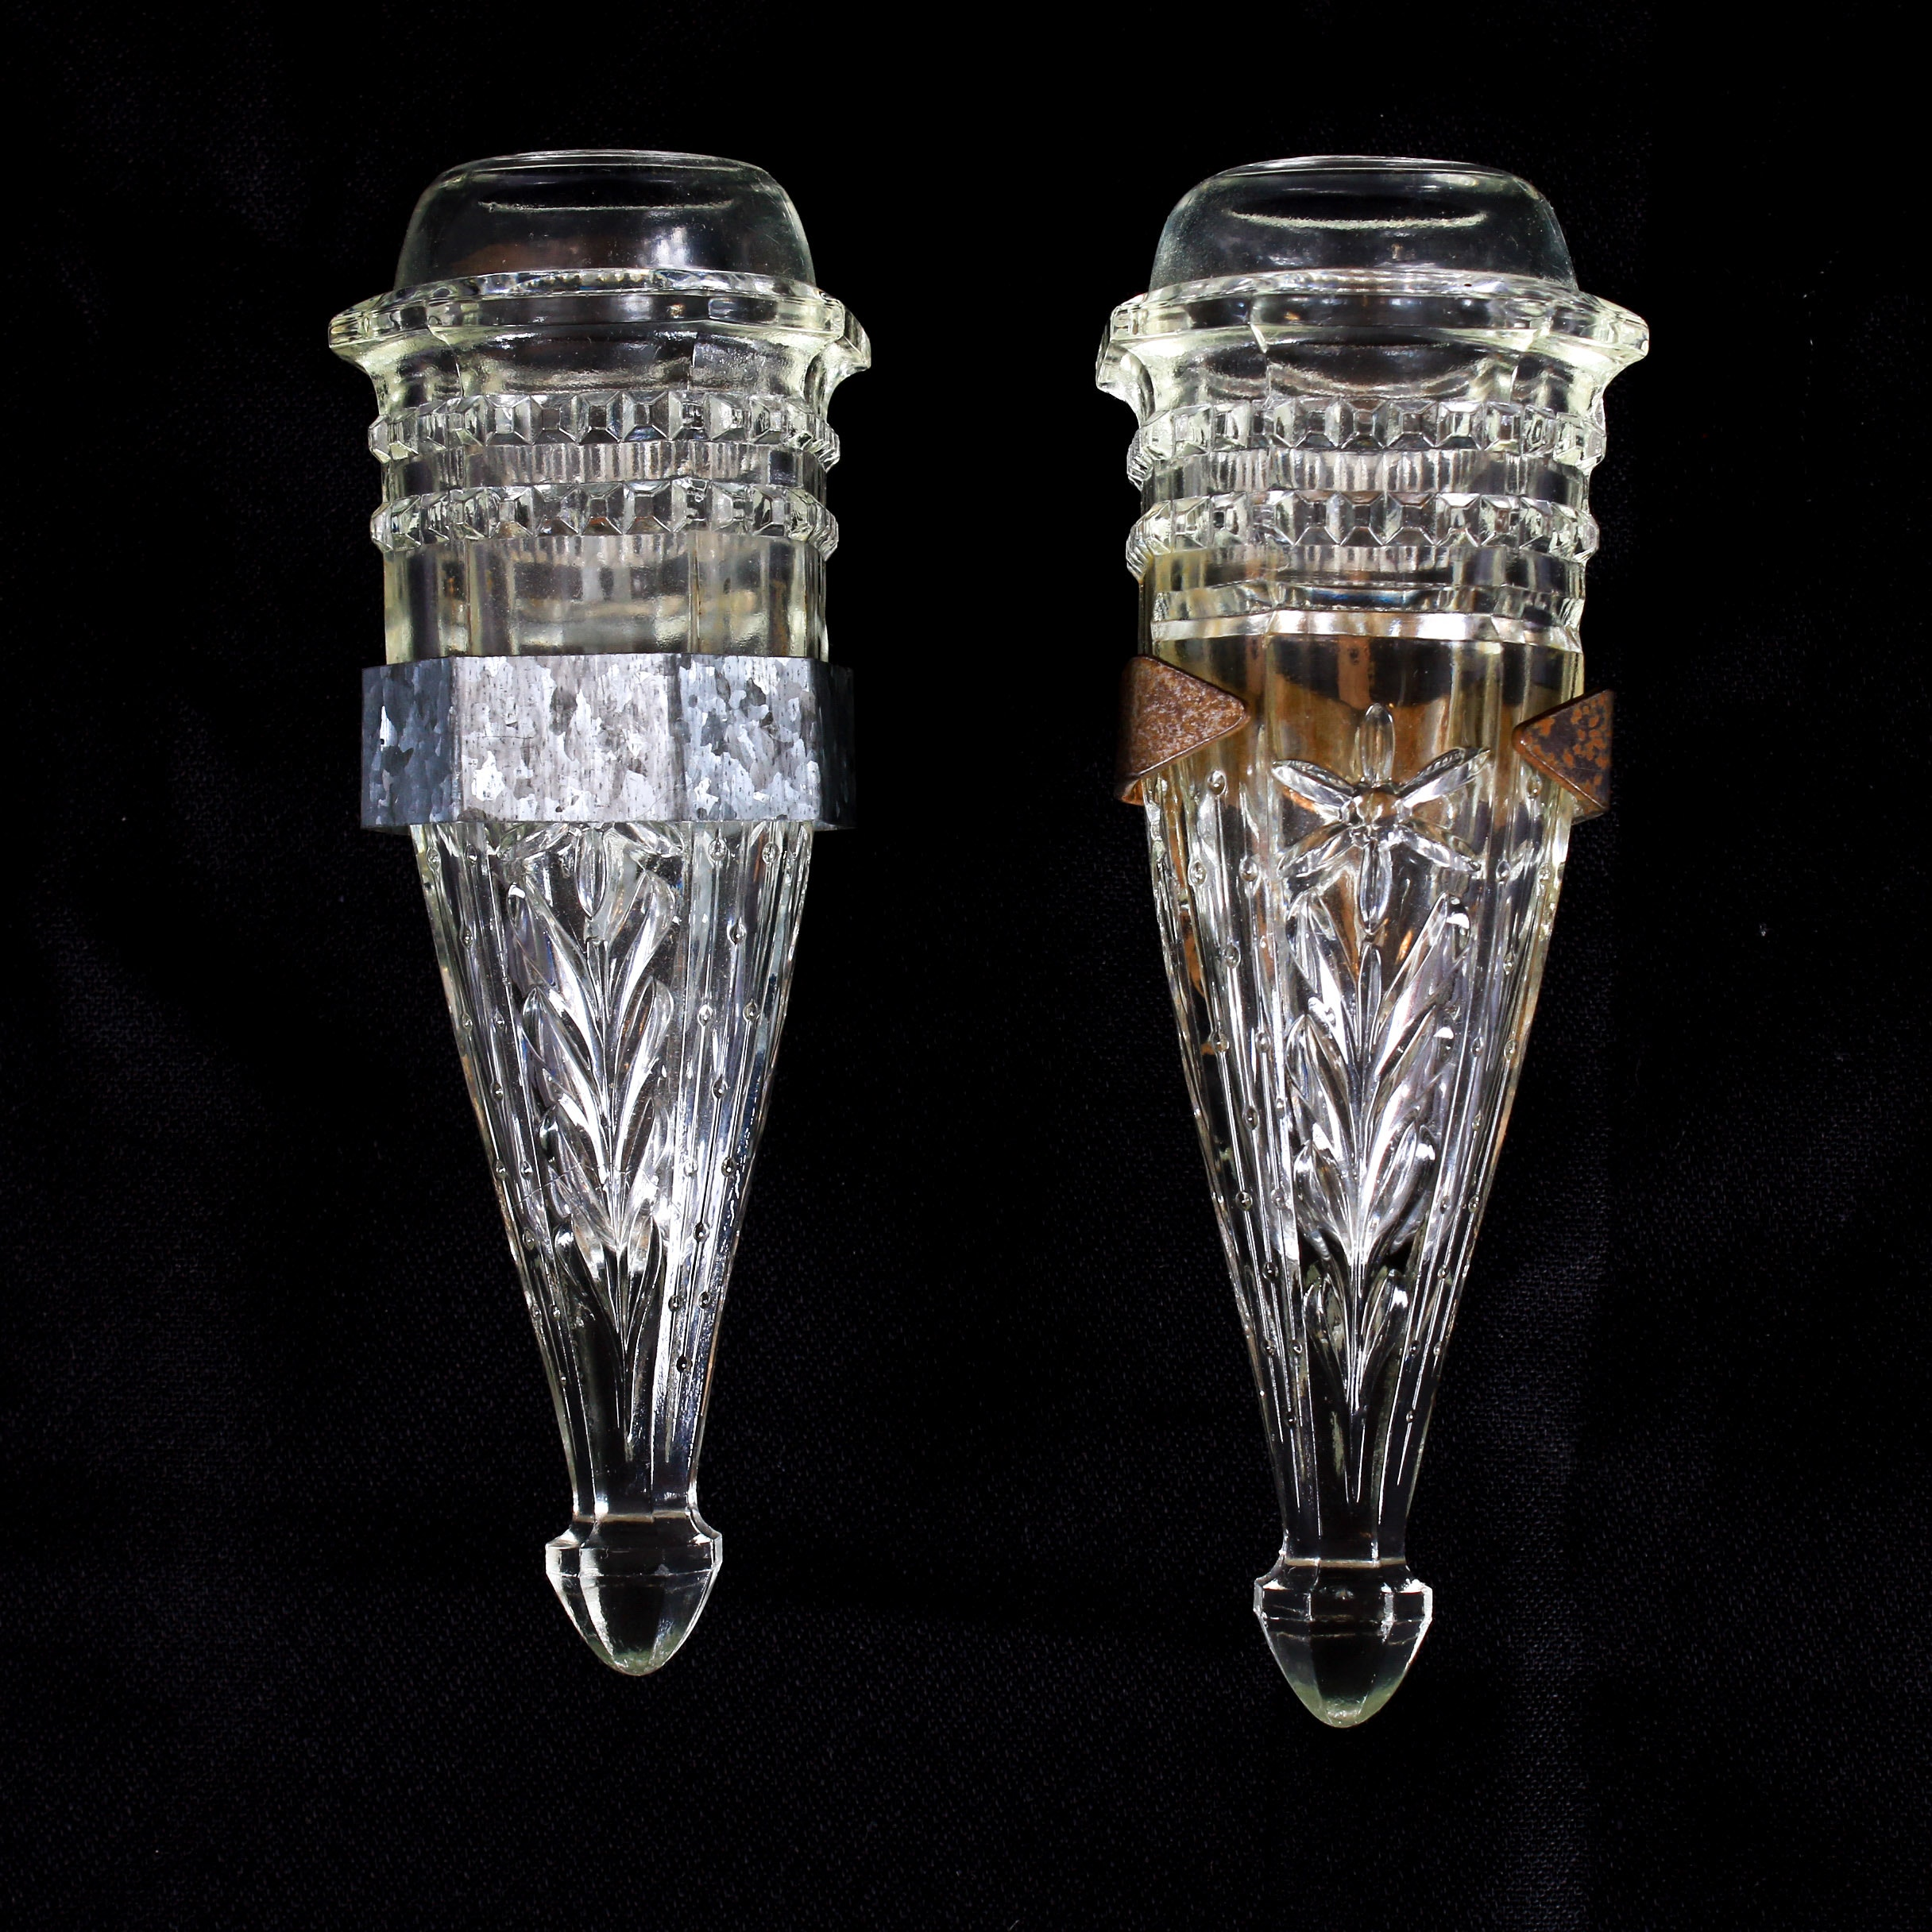 American Clear Glass Car Bud Vases, Depression Era